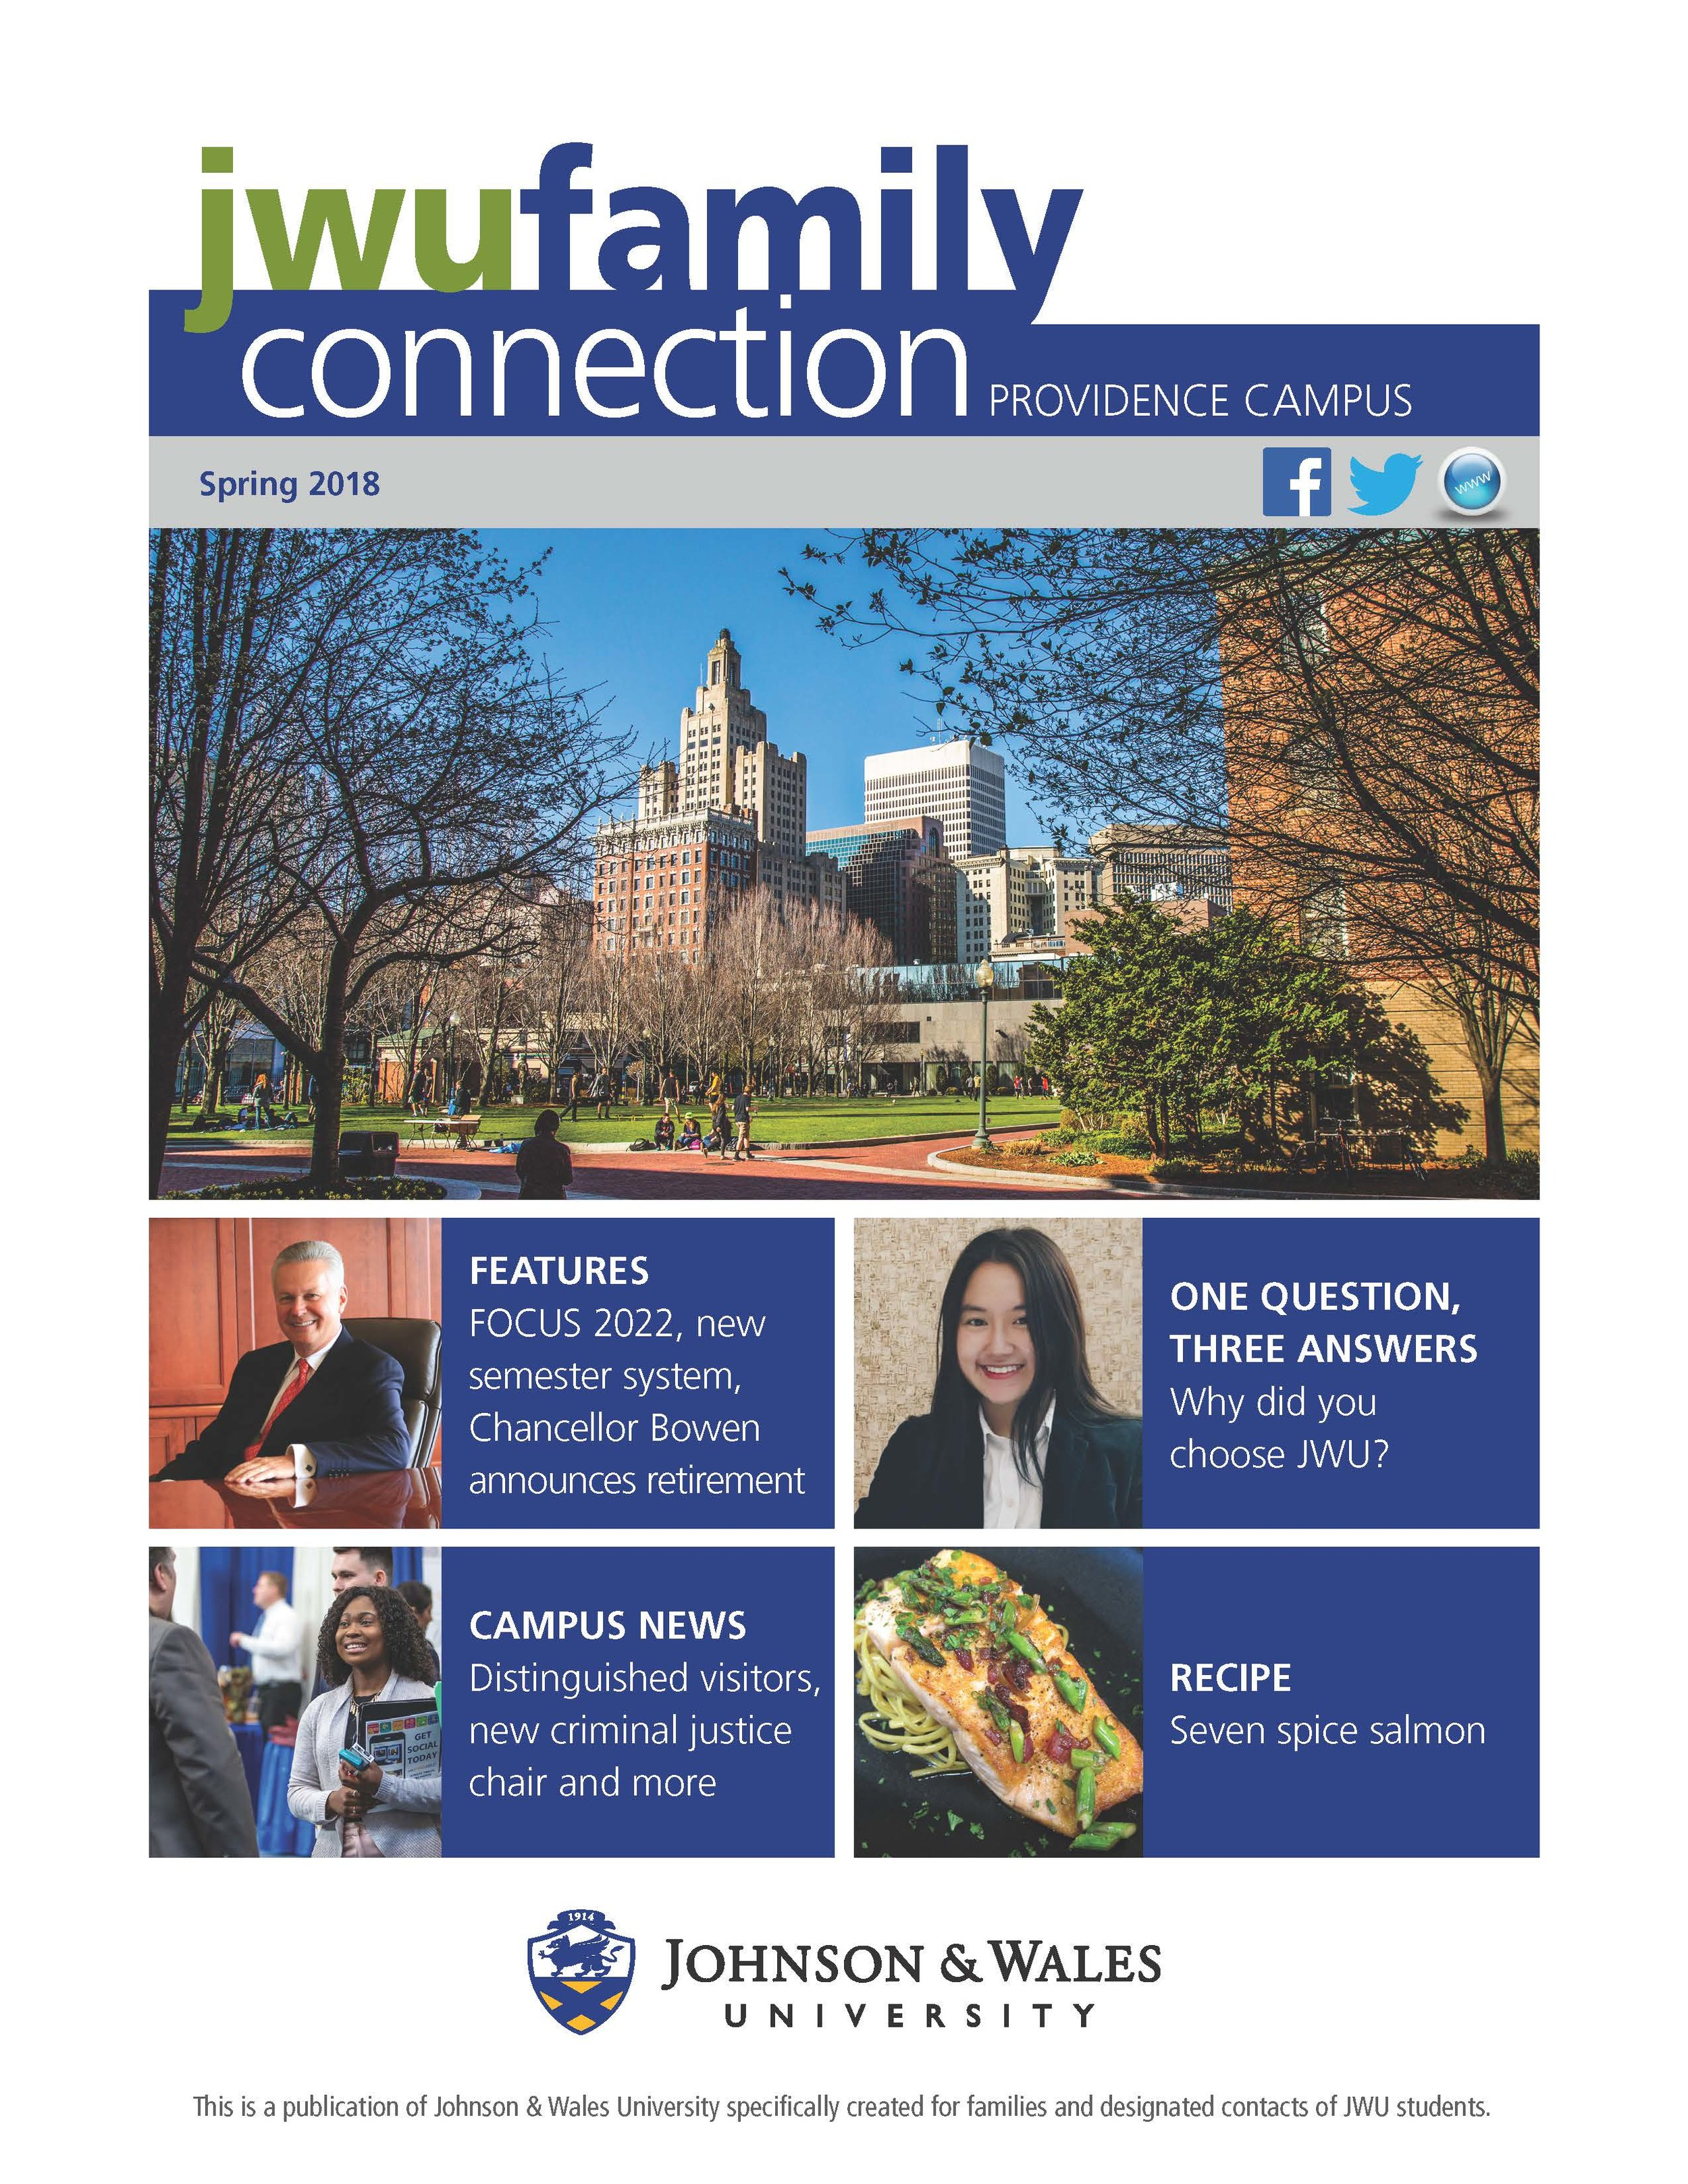 PVD_FamilyConnection_FINALspring2018 1.jpg